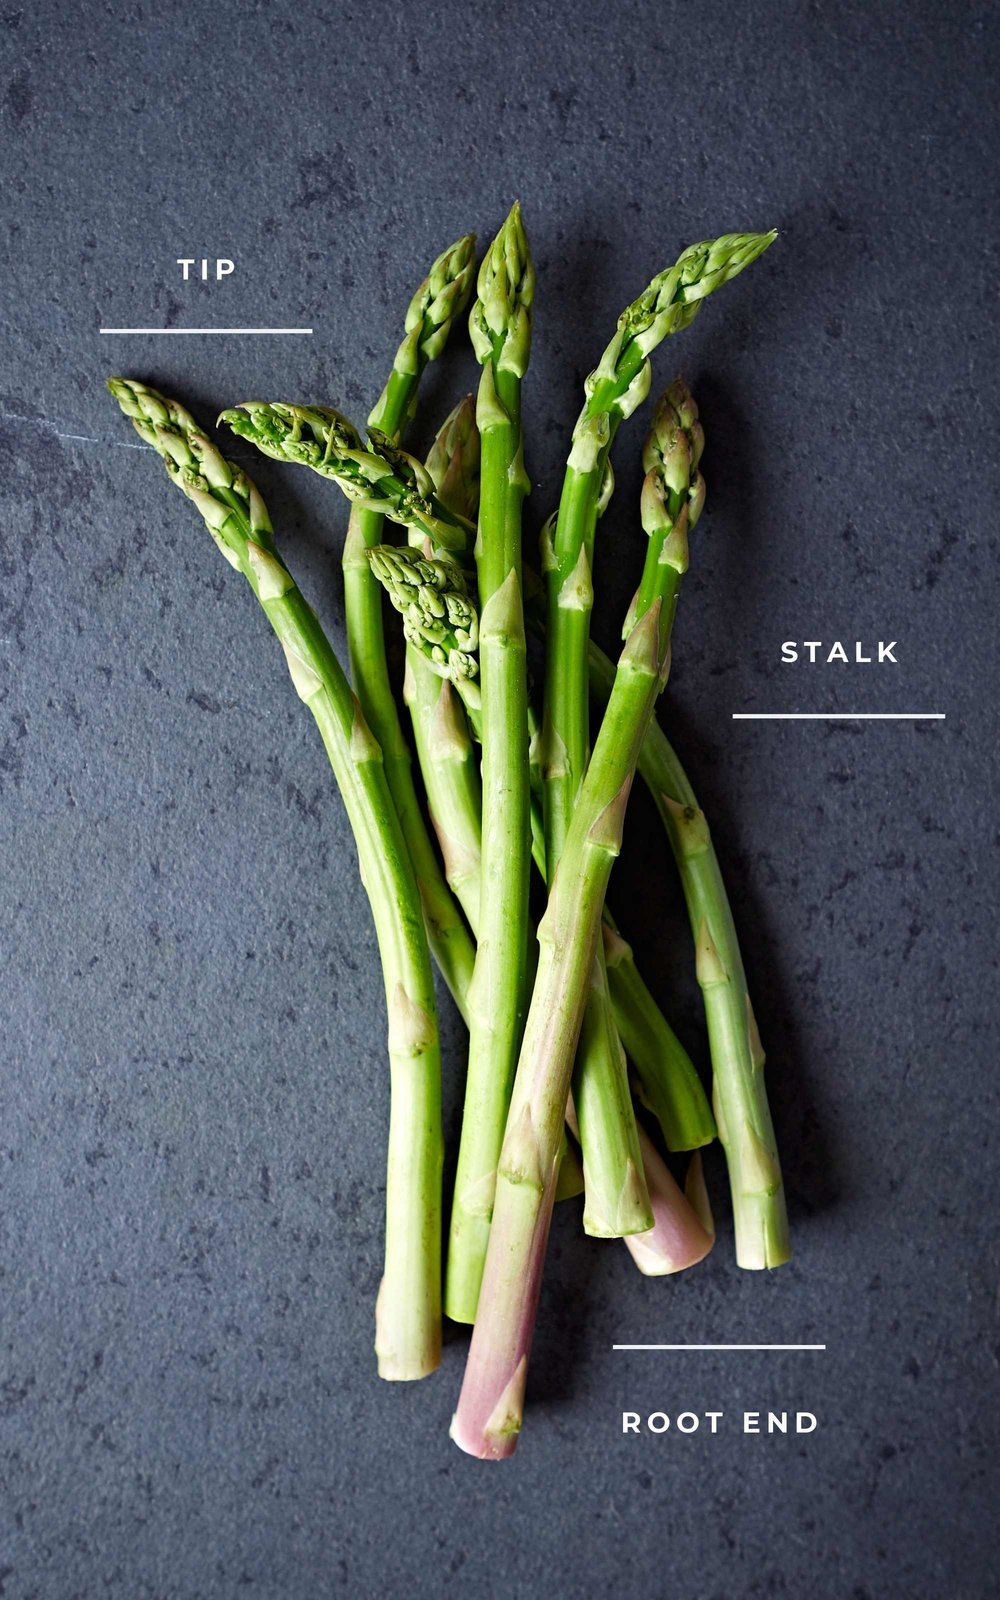 How To Choose, Store, And Cook Asparagus Perfectly Every